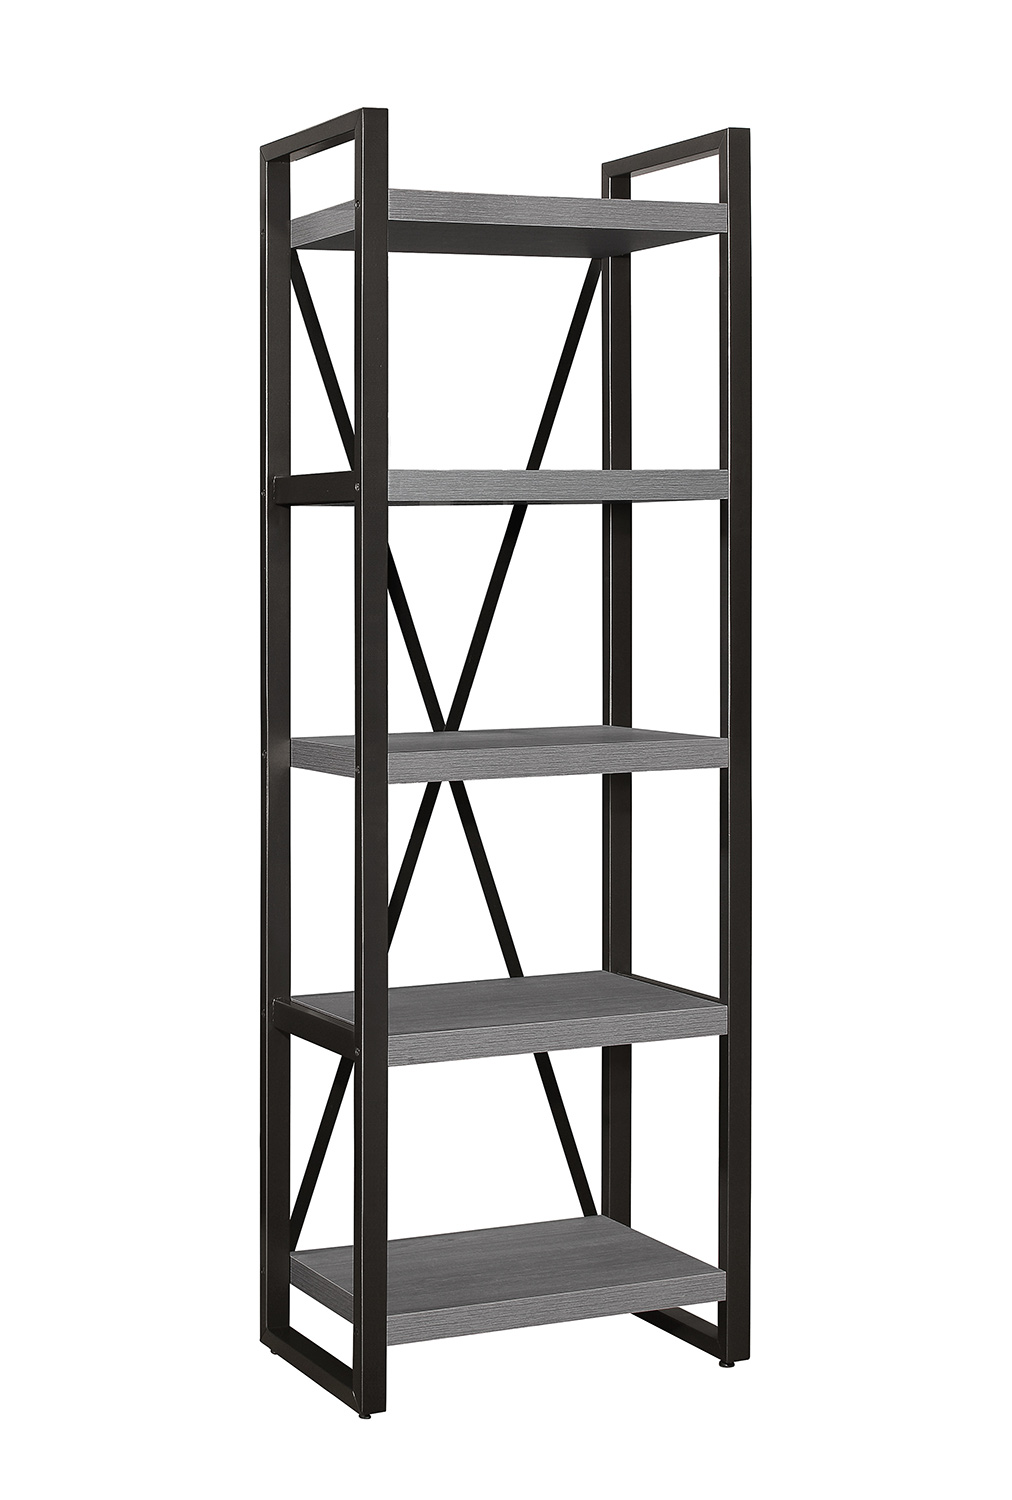 Homelegance Dogue 5-Shelf Bookcase - Gunmetal - Gray